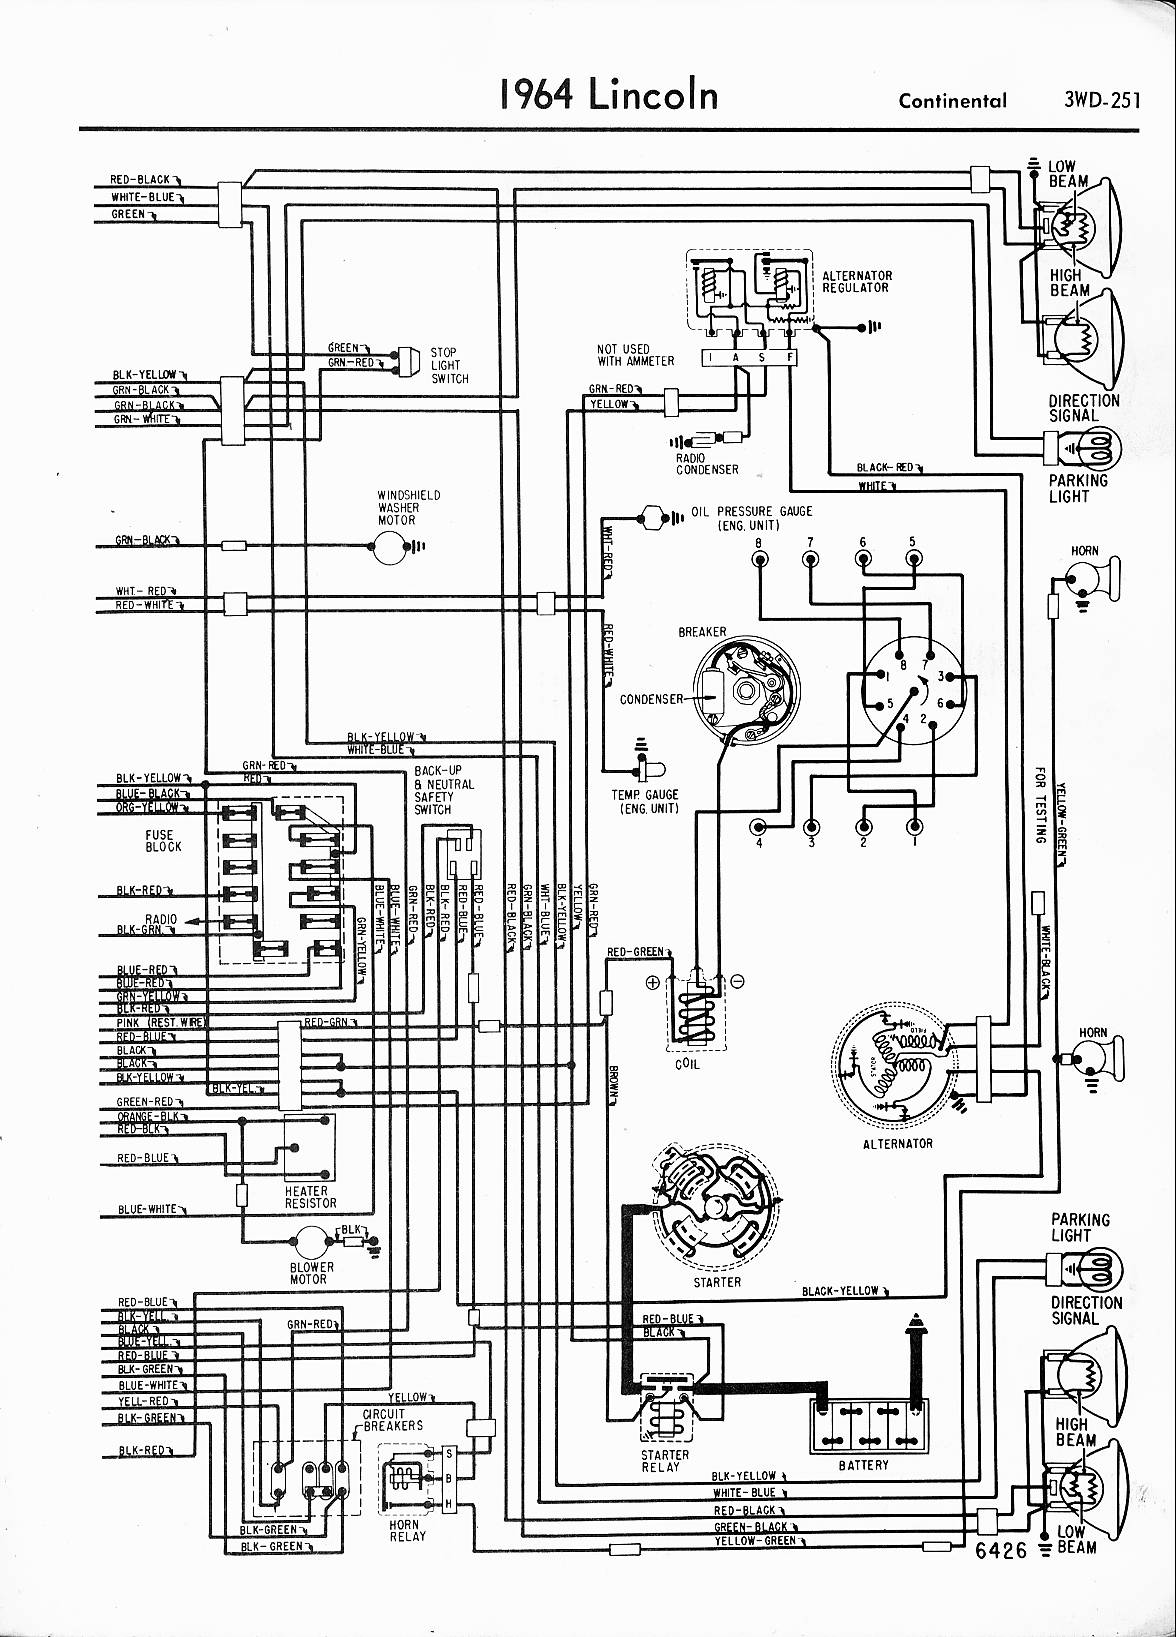 lincoln wiring diagrams: 1957 - 1965 1963 lincoln continental wiring diagram images of 1961 lincoln continental wiring diagram